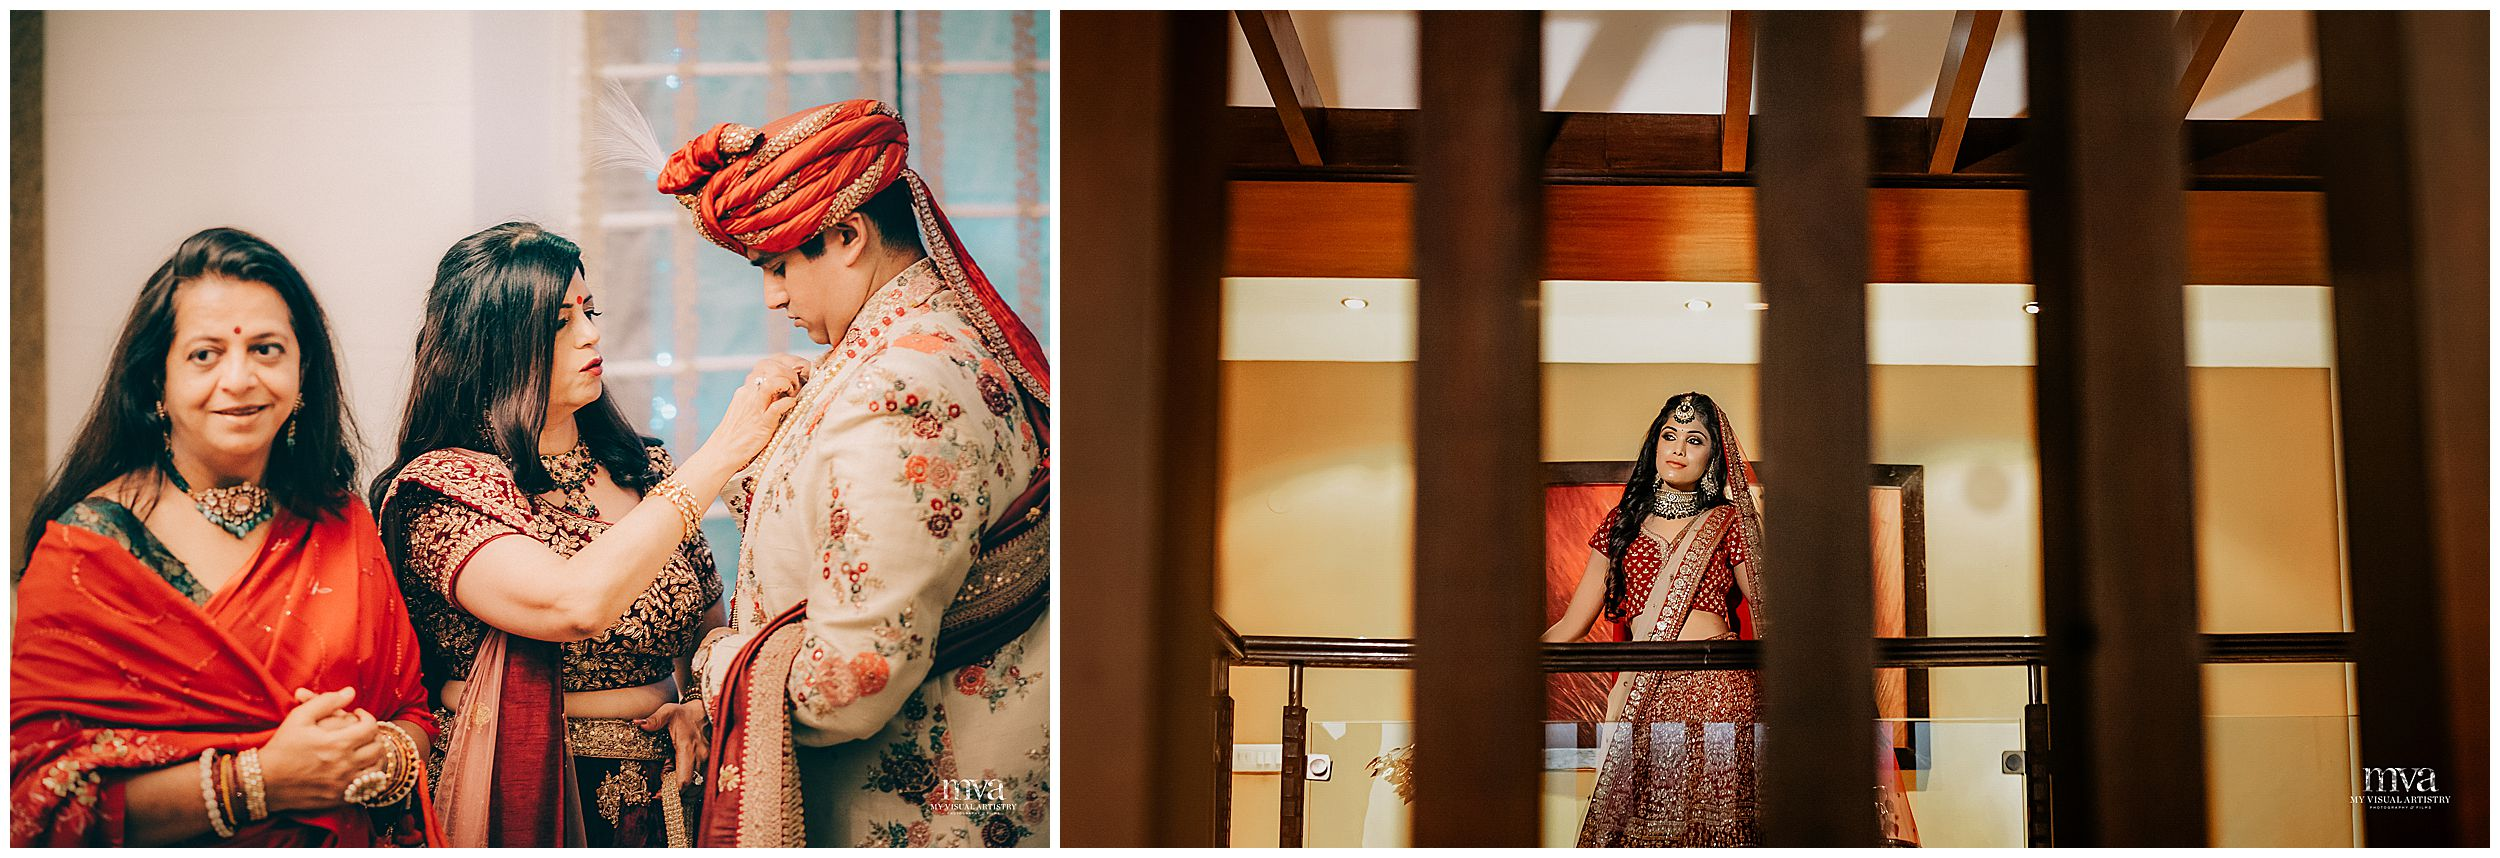 SIDDARTH_SAKSHI_MYVISUALARTISTRY_WEDDING_PHOTOGRAPHY_MVA_EROSHANGRILA_DELHI_0023.jpg